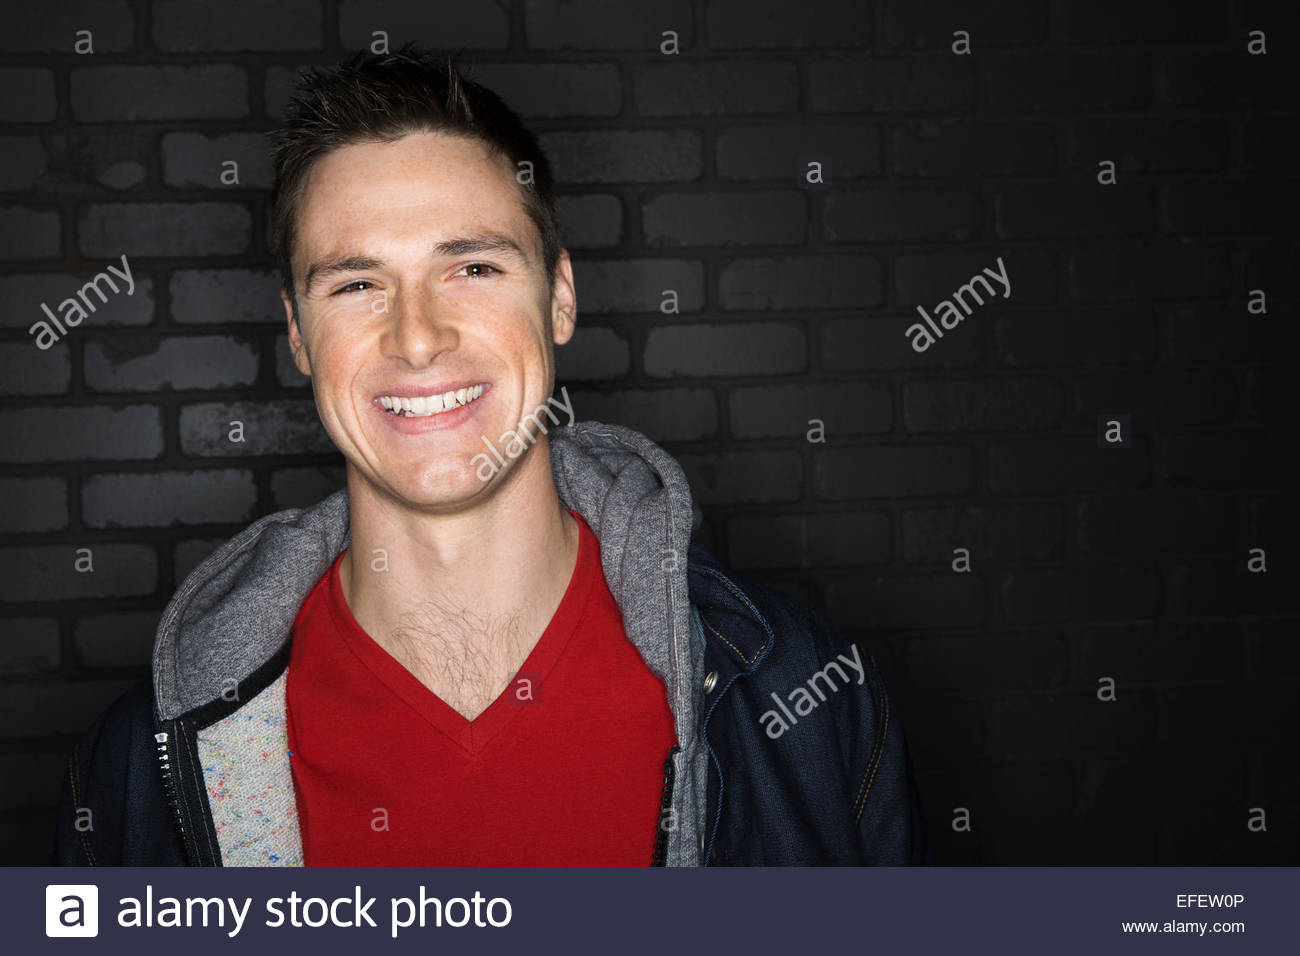 Portrait of smiling brunette man wearing jacket - Stock Image